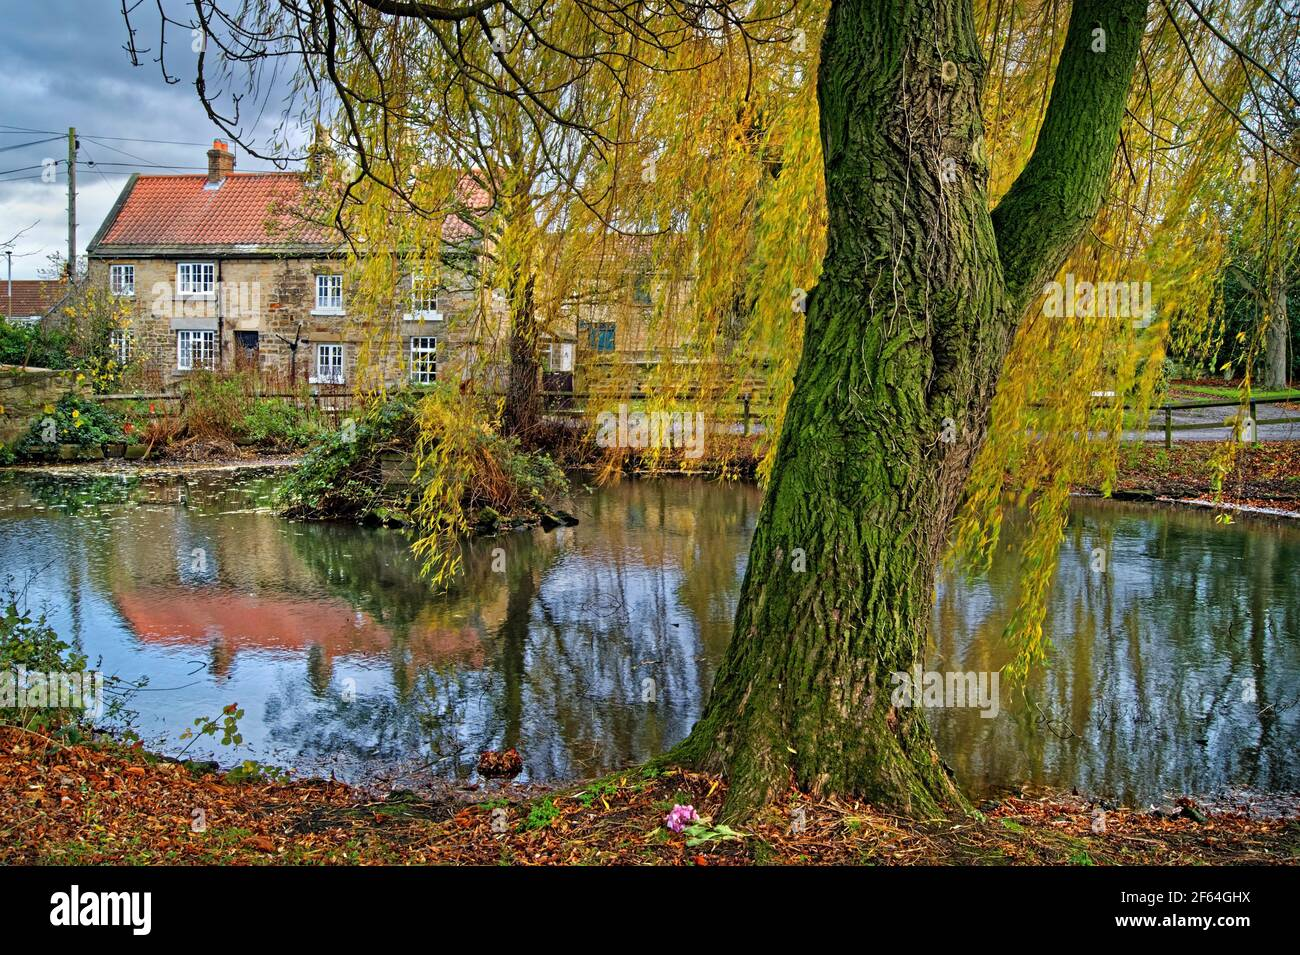 UK,South Yorkshire,Doncaster,Village of Clayton with Pond during Autumn Stock Photo